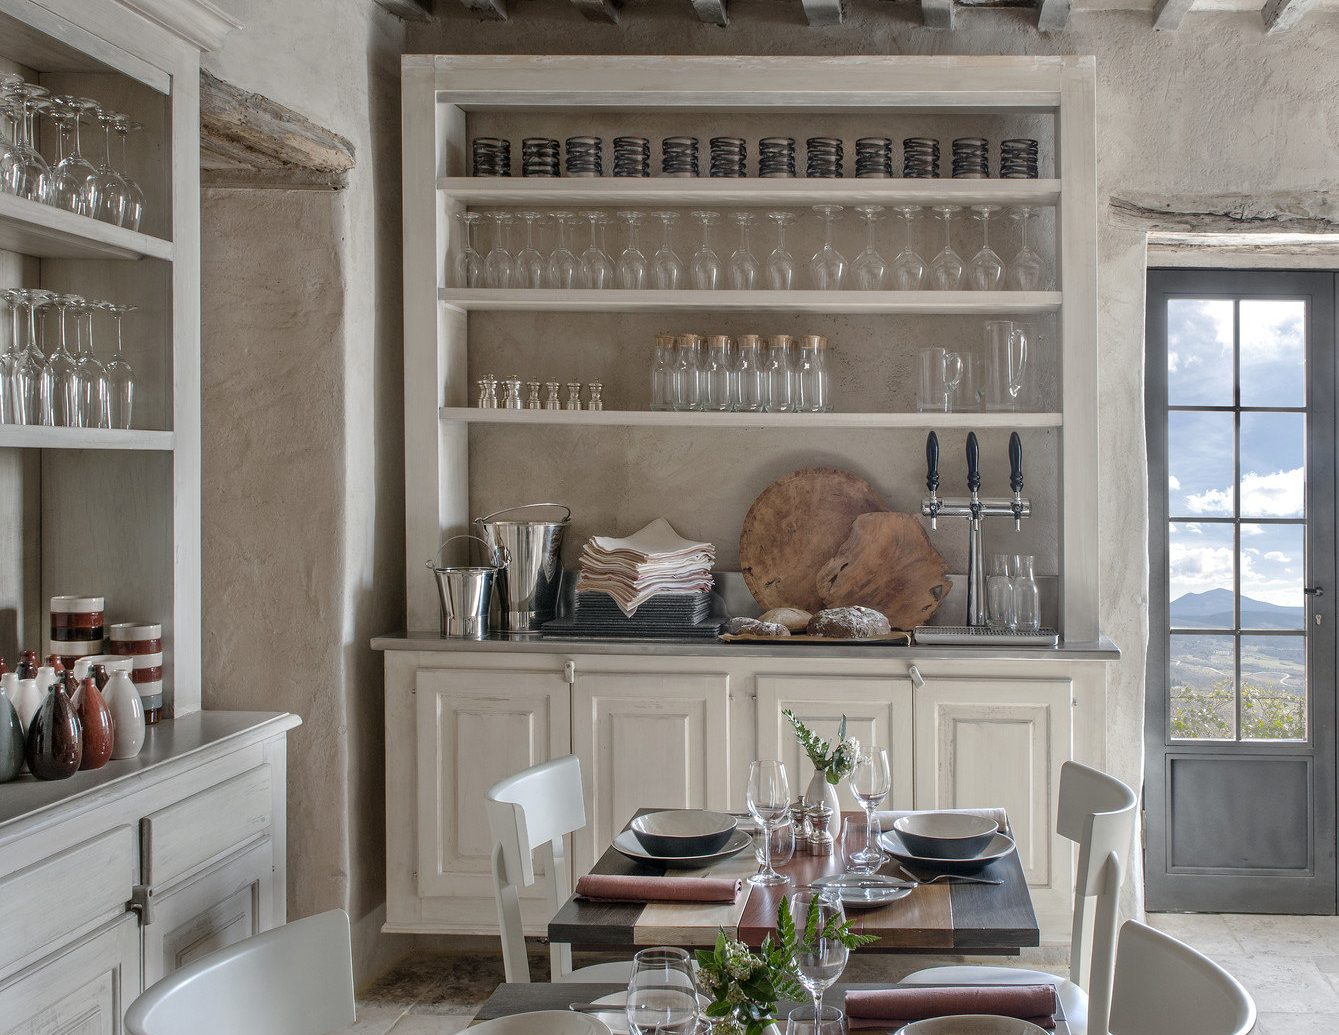 charming cozy Dining europe homey interior Kitchen quaint Rustic table Trip Ideas dining room room living room window property home interior design floor estate farmhouse wood ceiling cottage real estate Design loft porch furniture